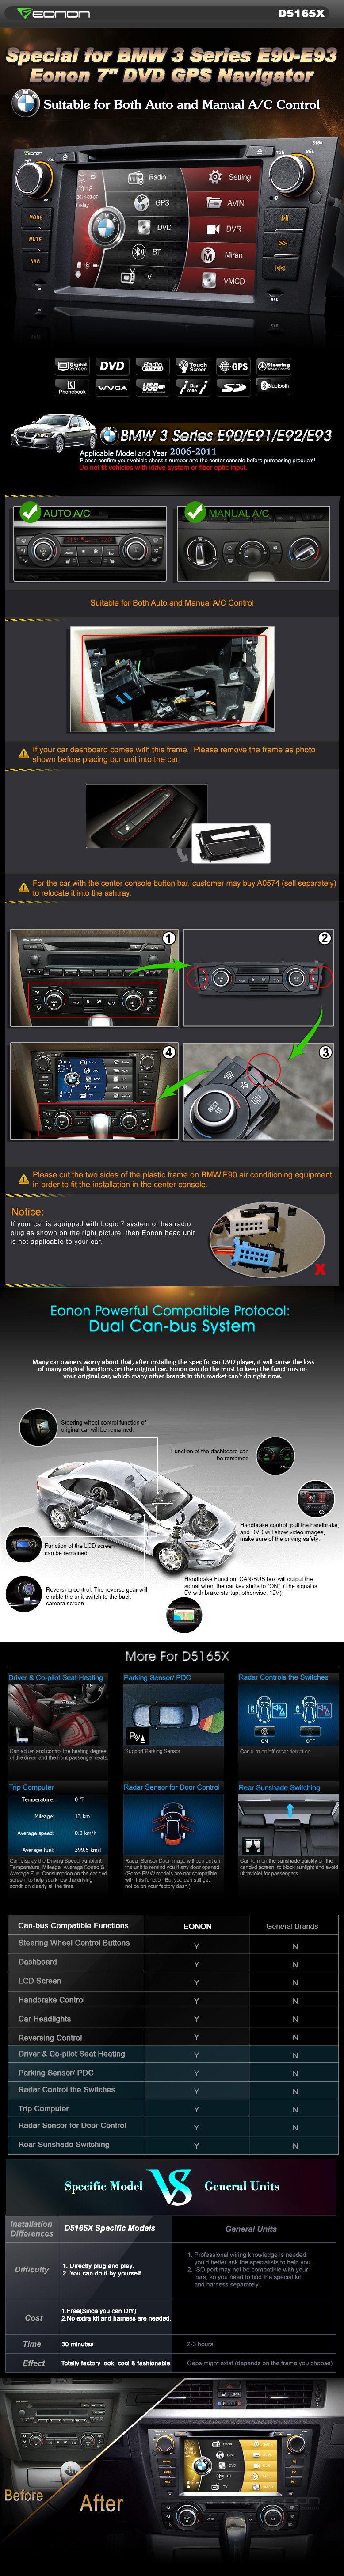 Eonon 7 Inch DVD GPS Player with Bluetooth Special for BMW 3